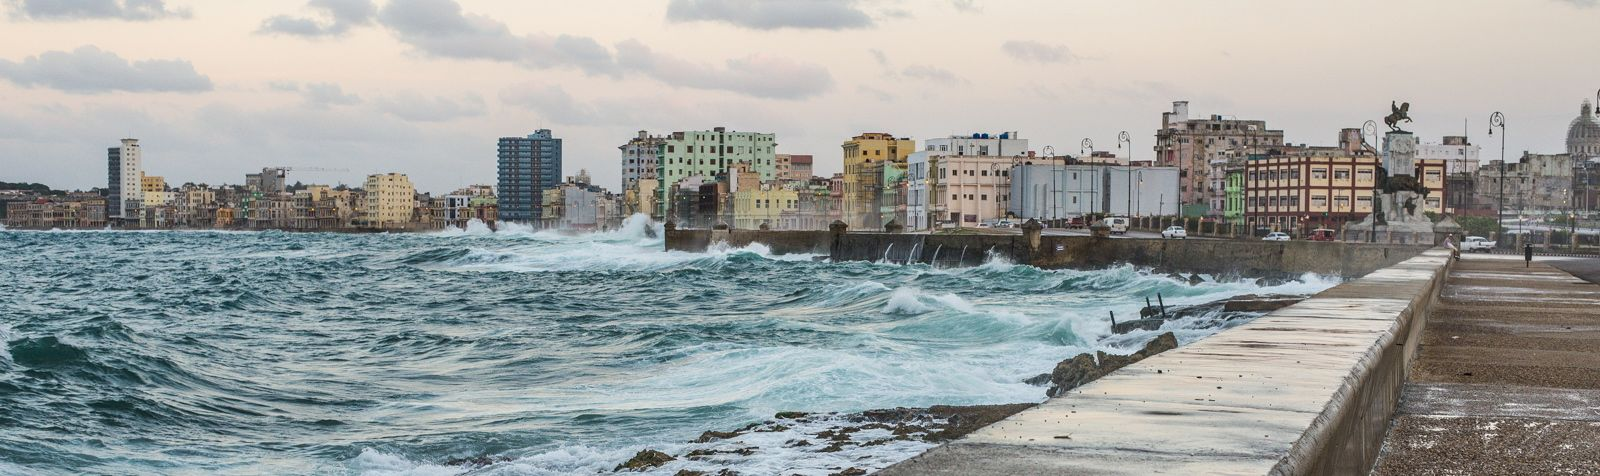 See the Malecon with the Havana Tour Company